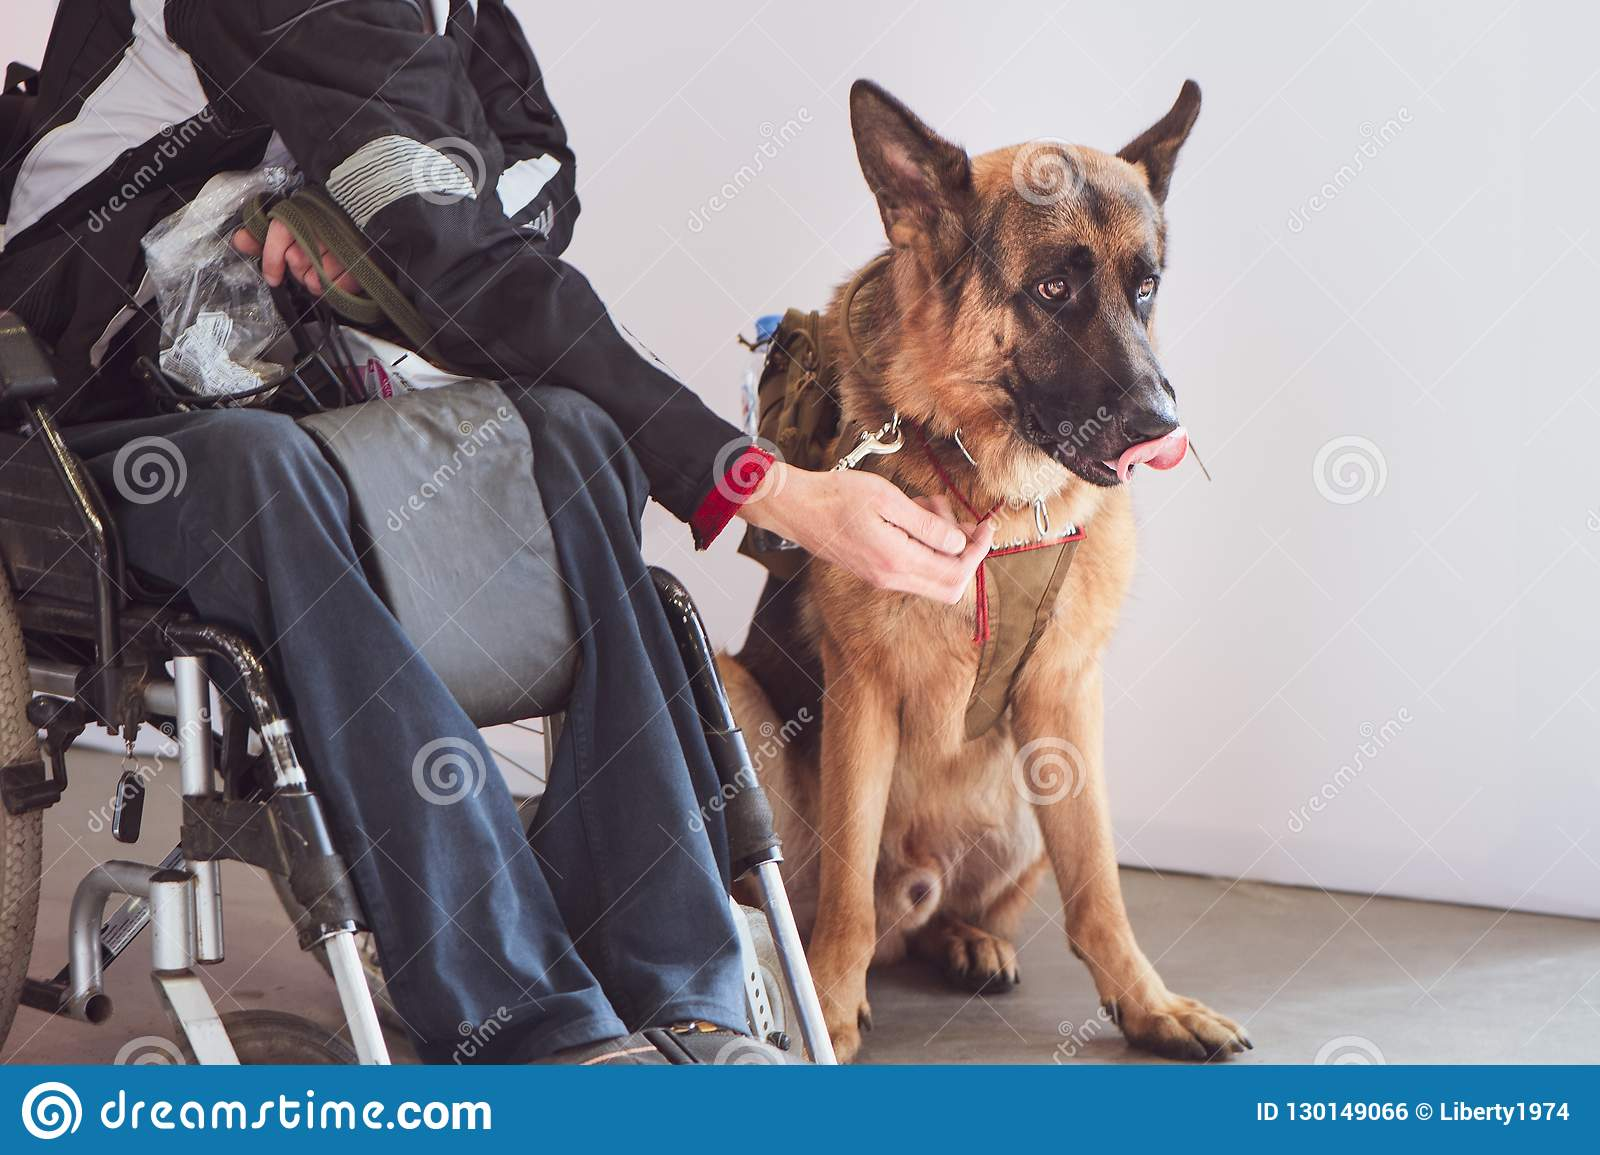 Shepherd, service dog with the owner the invalid